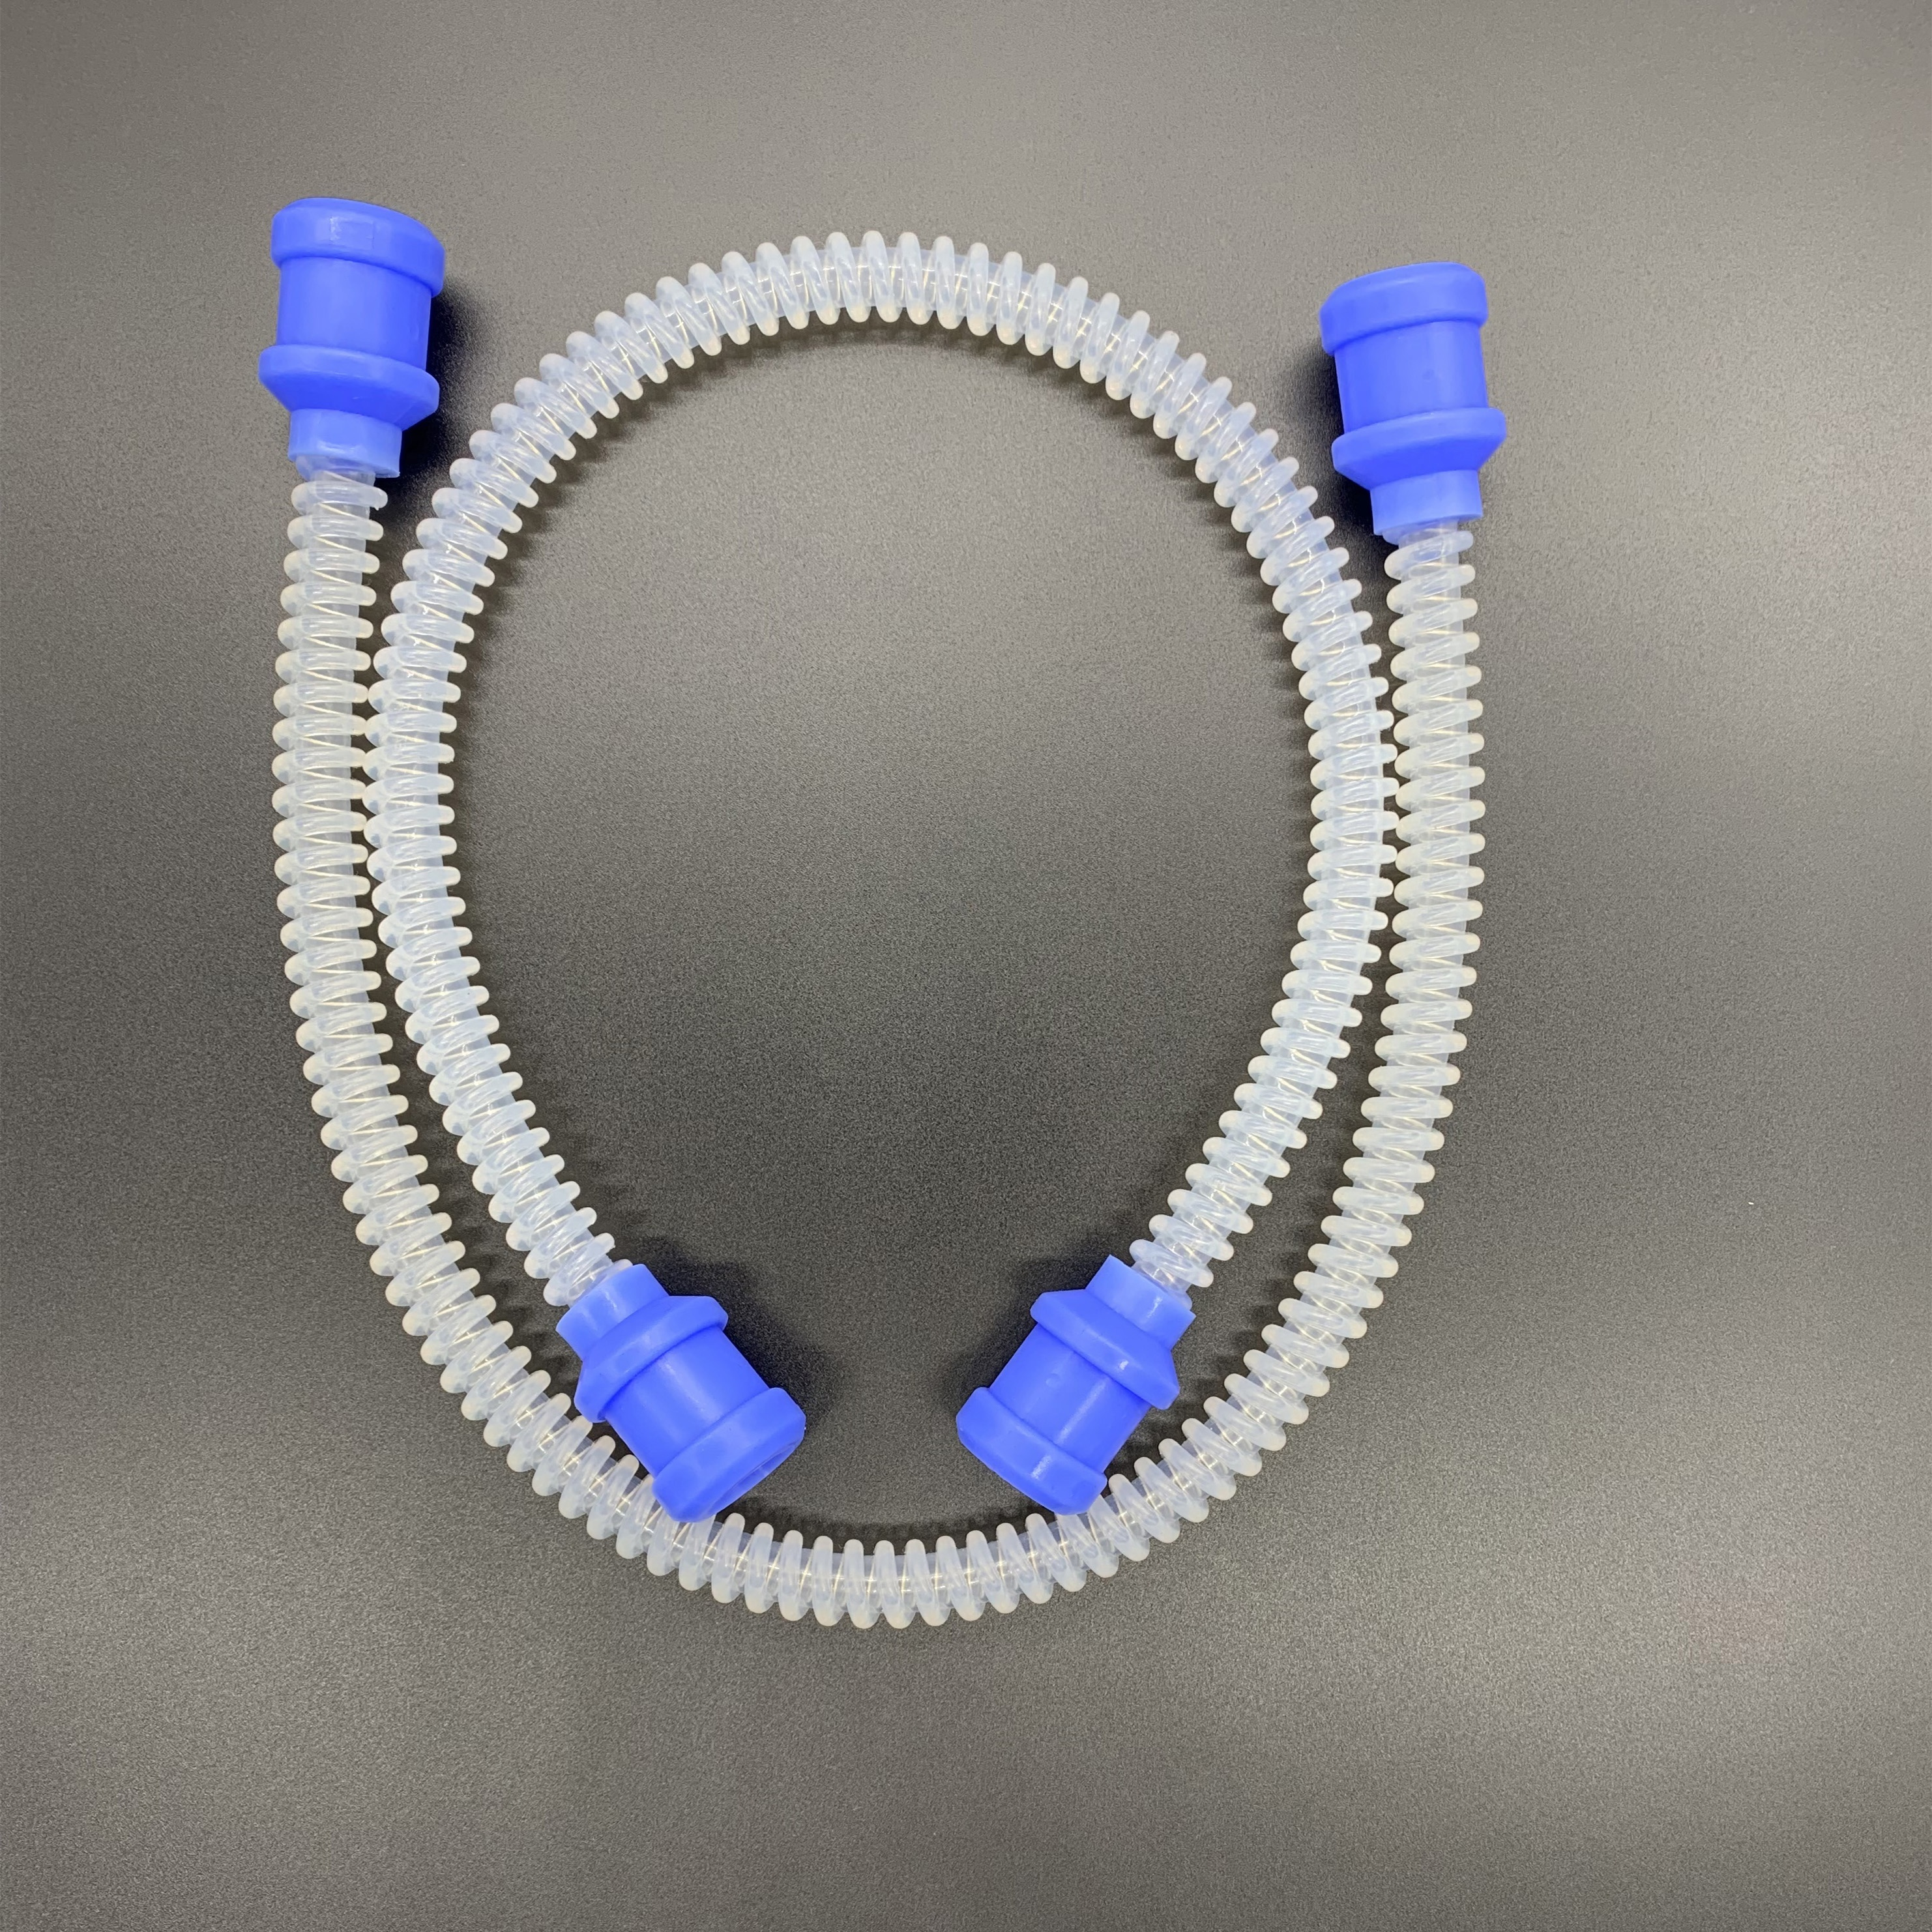 Silicone Reusable Corrugated Anaesthesia Breathing Circuit